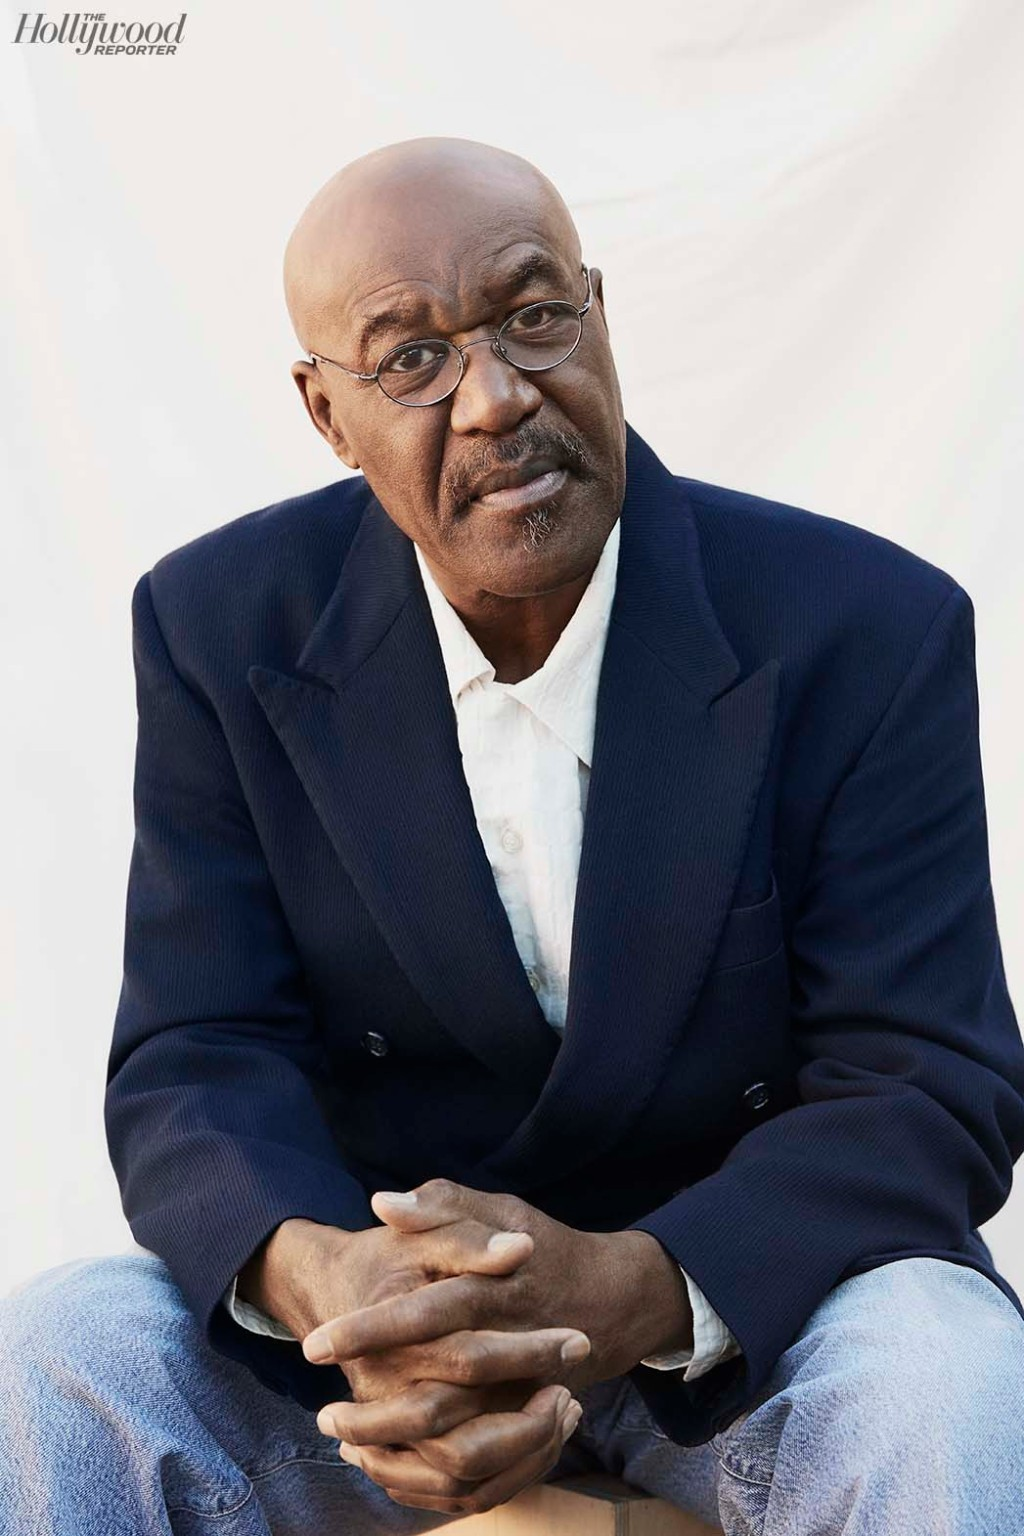 Delroy Lindo by Katie Lovecraft